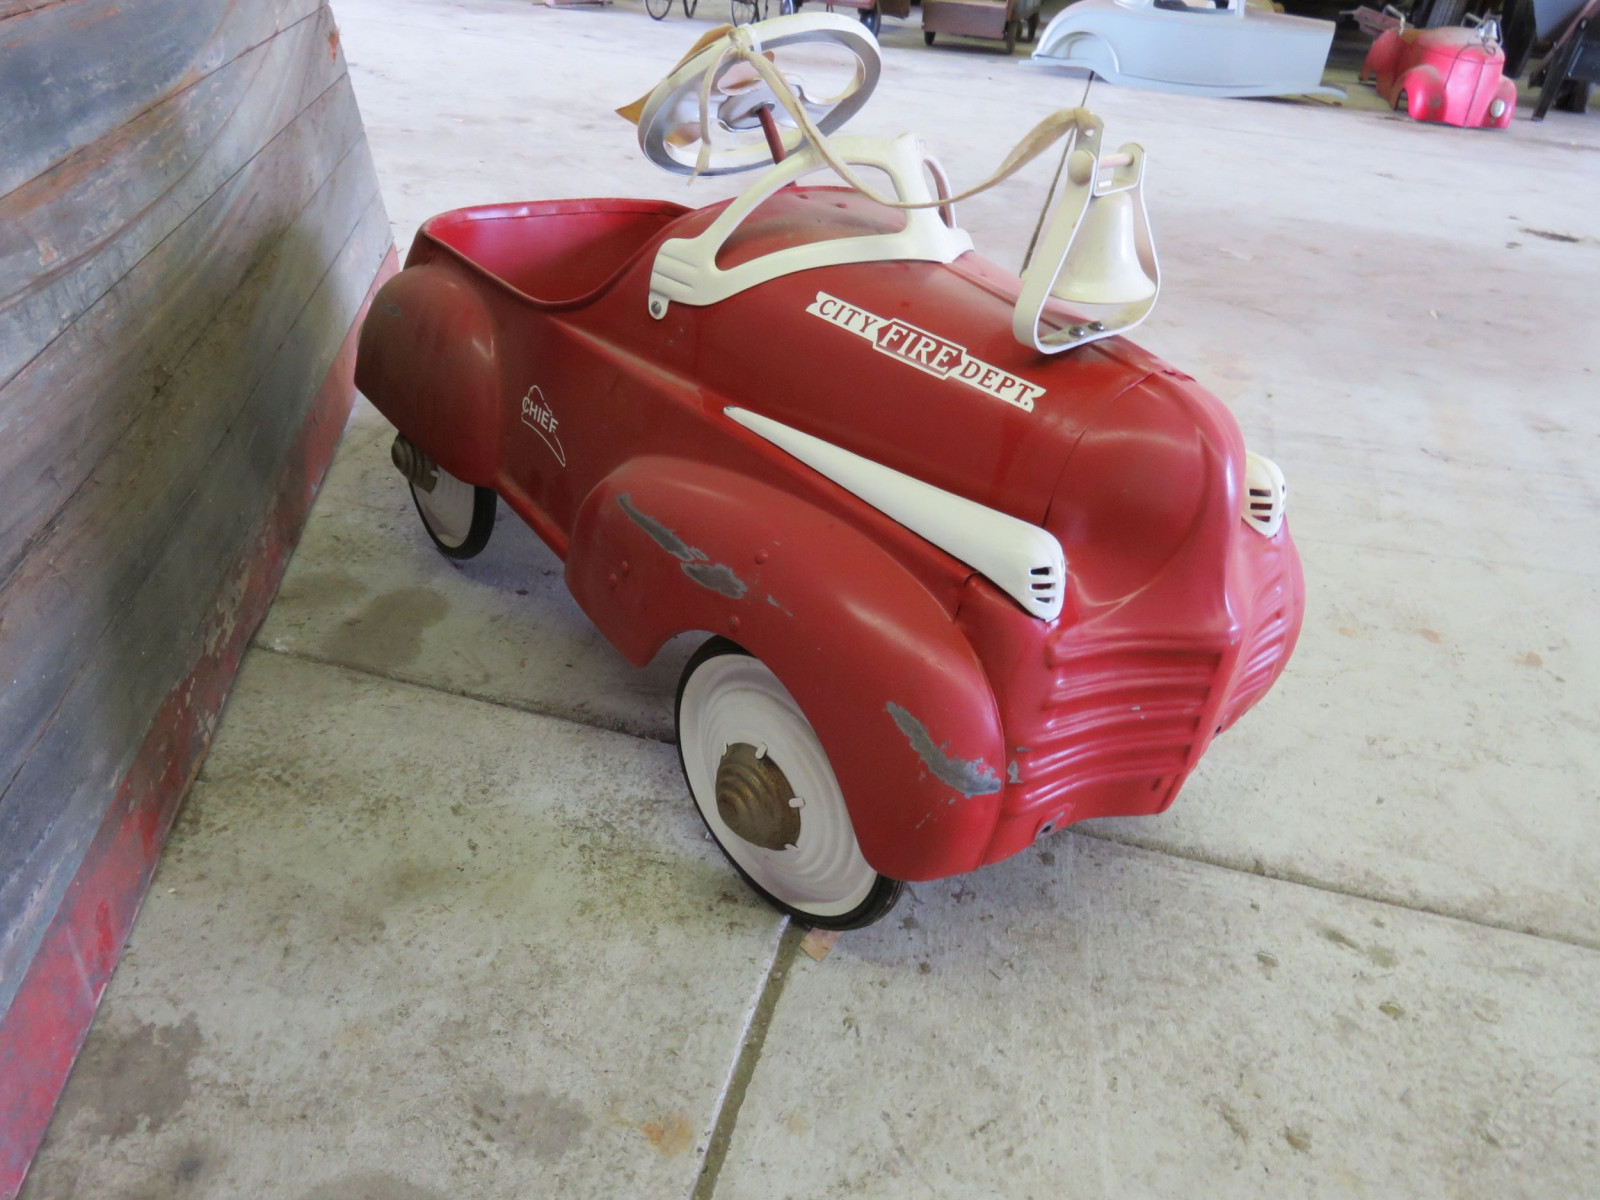 Steel craft City Chief Department Pedal Car - Image 2